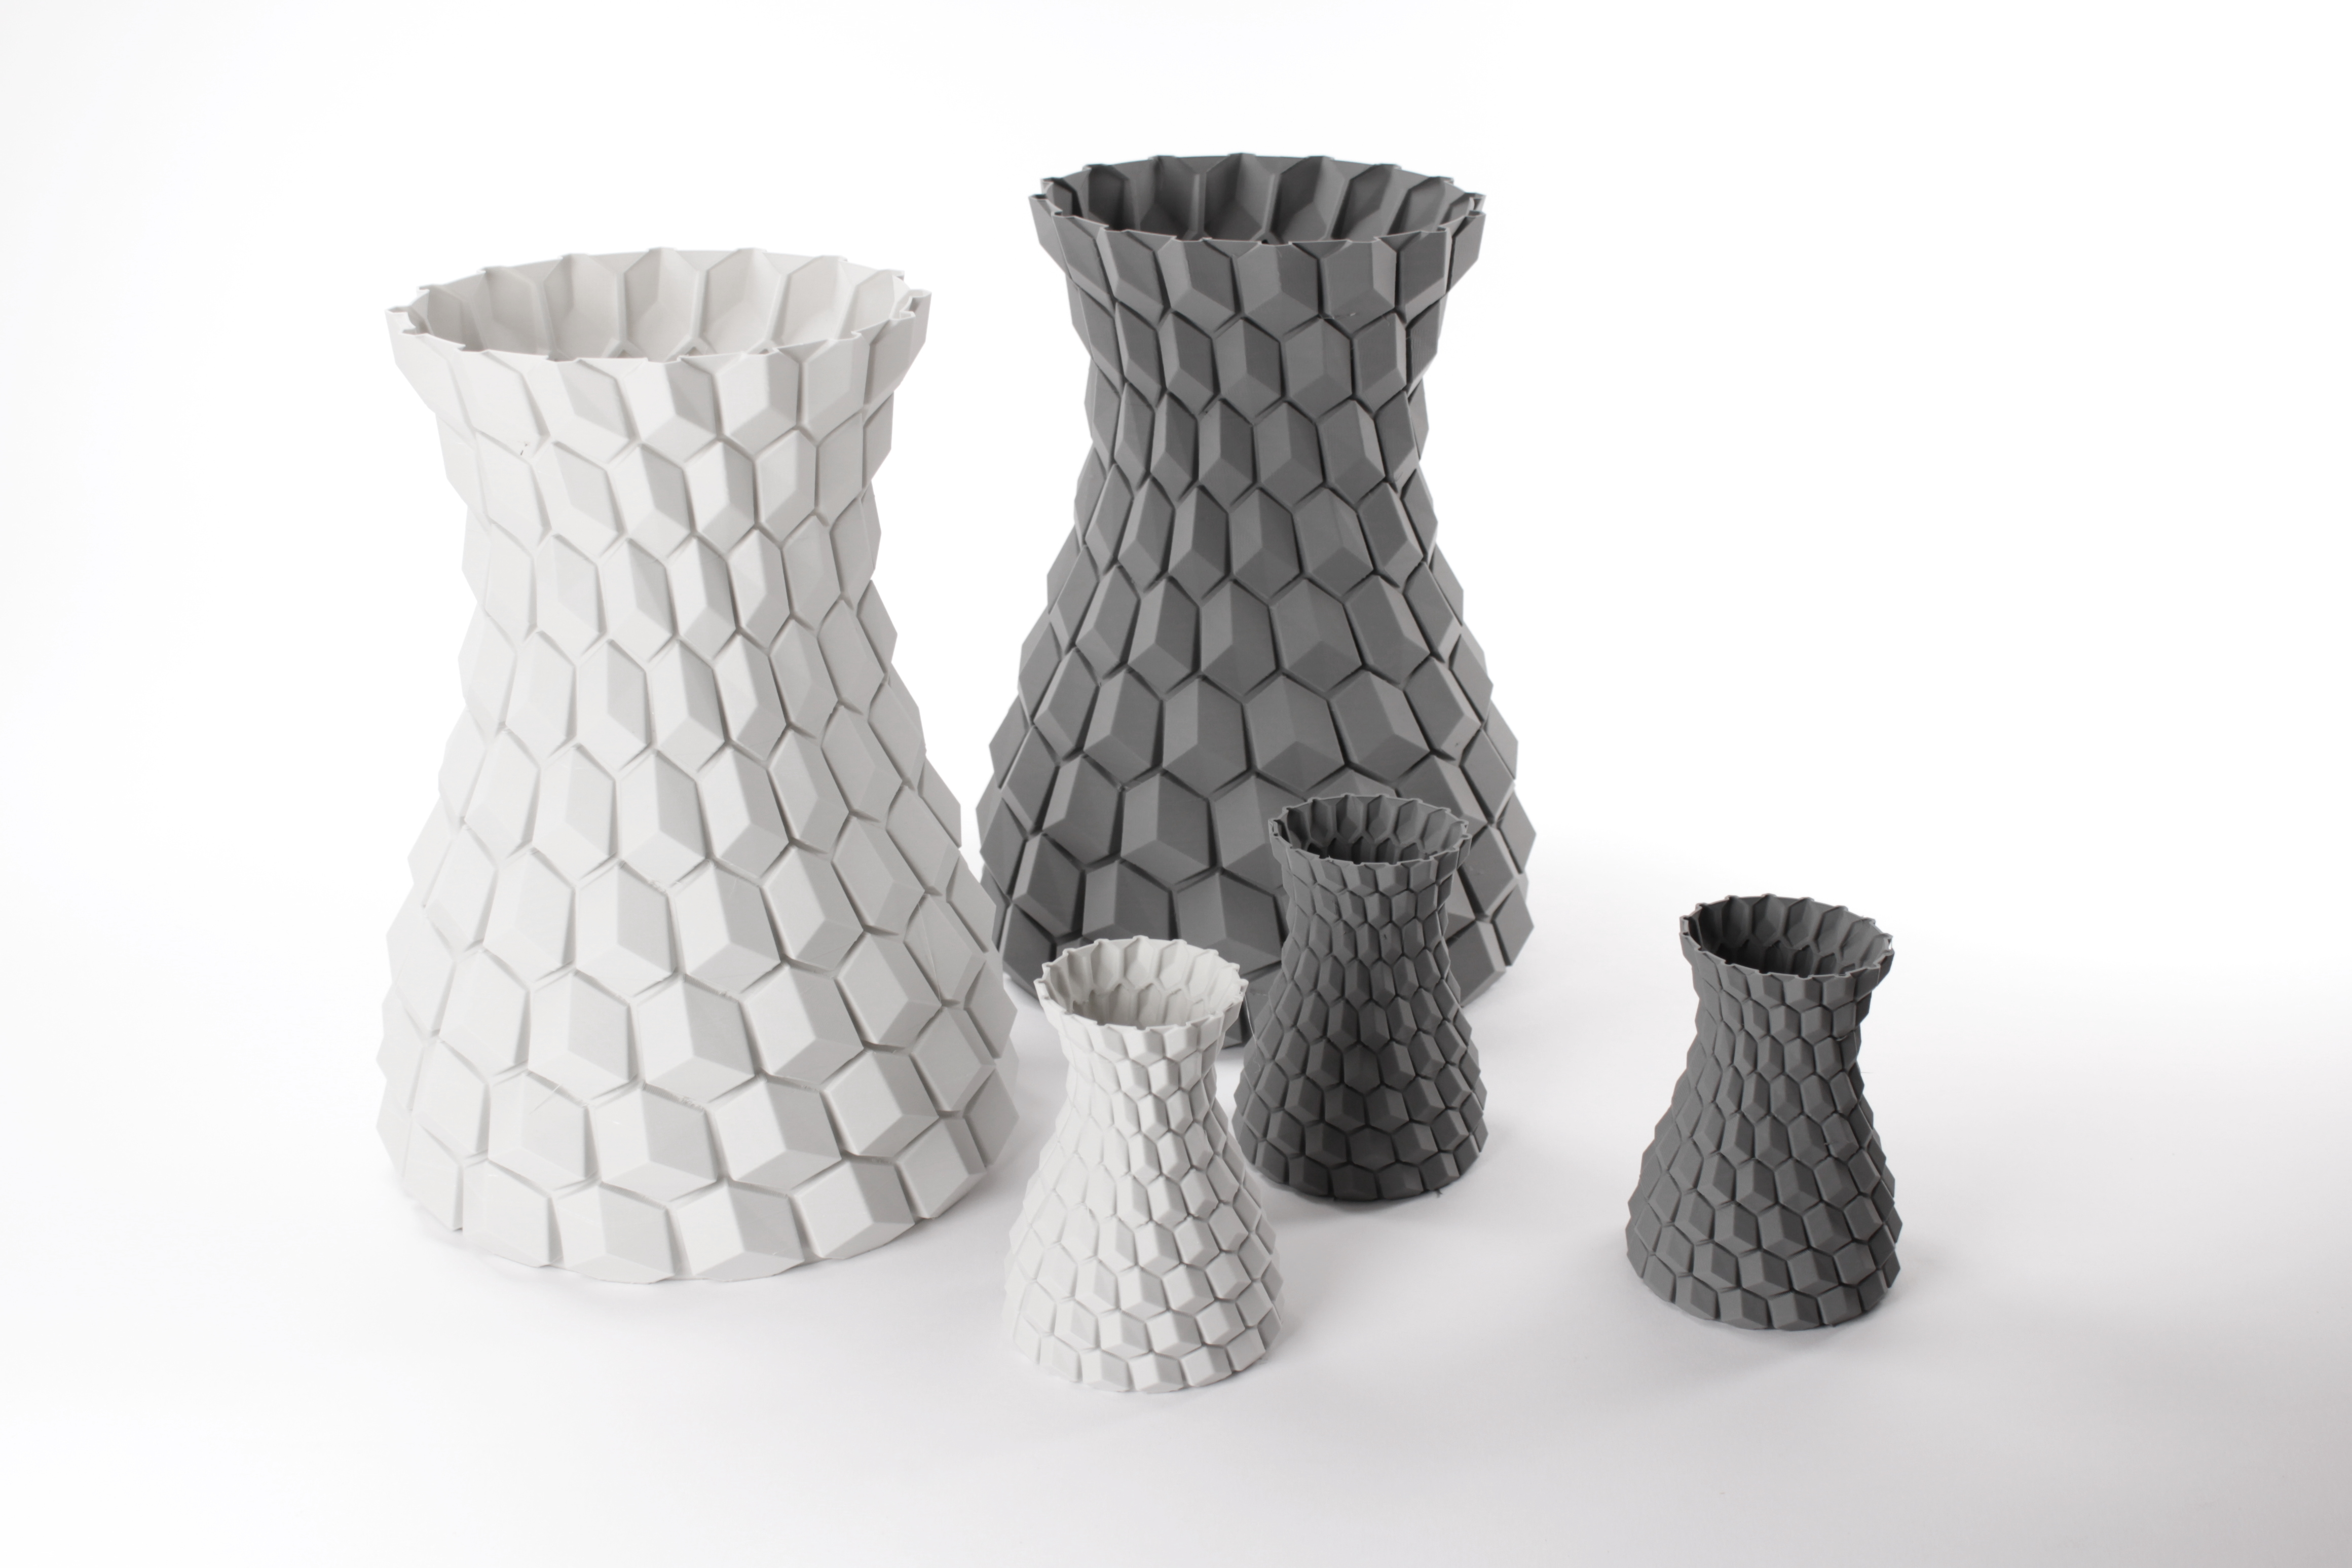 StoneFil - Honeycomb vases, design by Aleksey Grishchenko